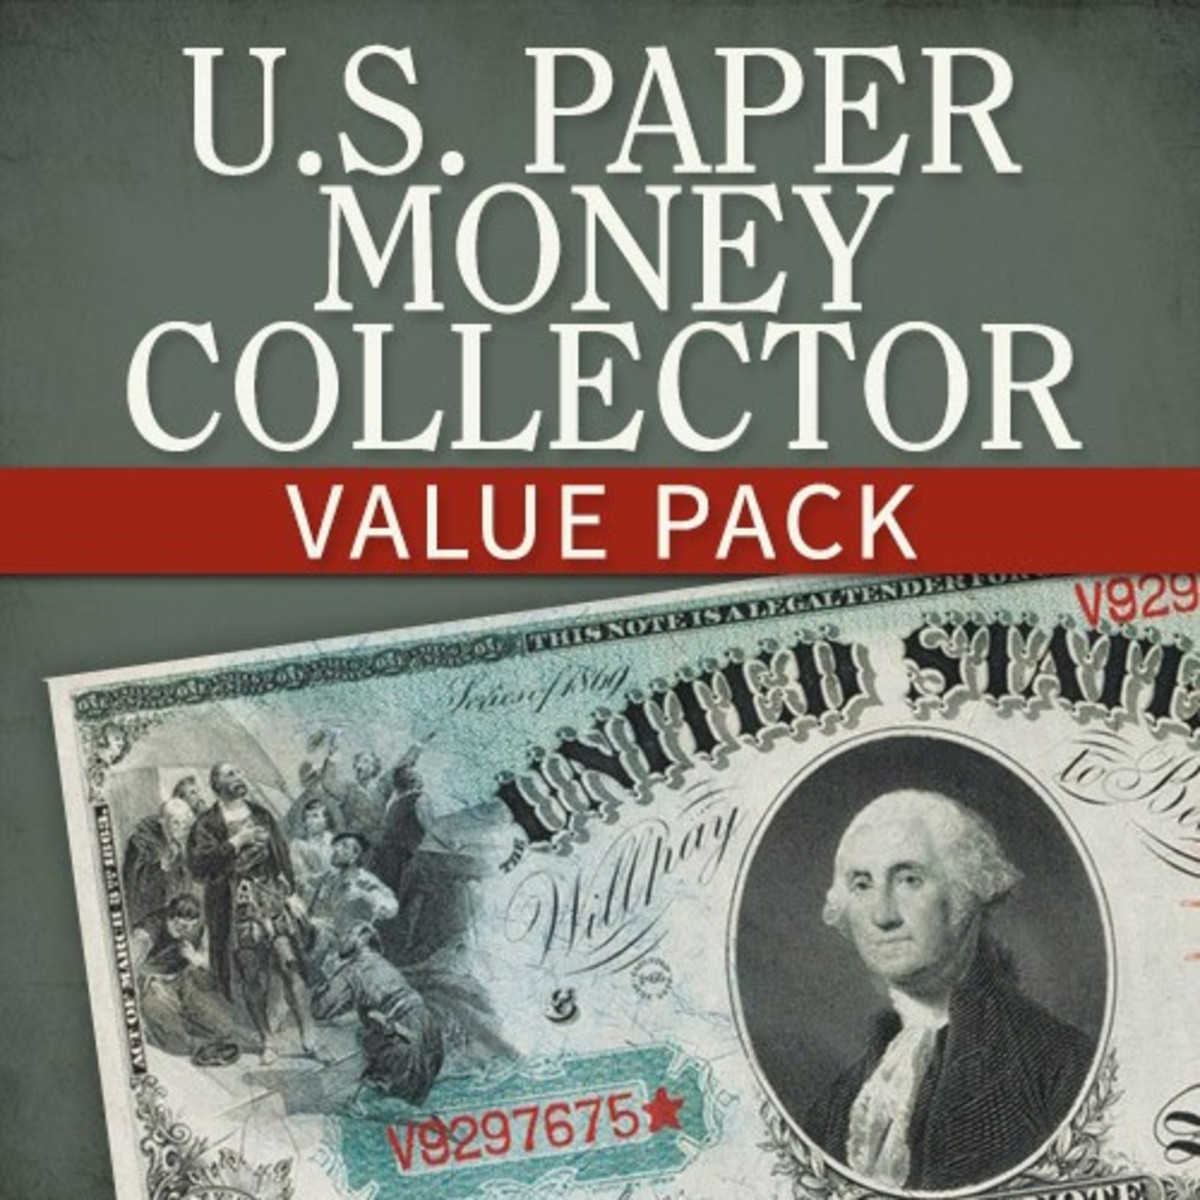 This value pack is perfect anyone interested in collecting U.S. paper money. Get yours today!